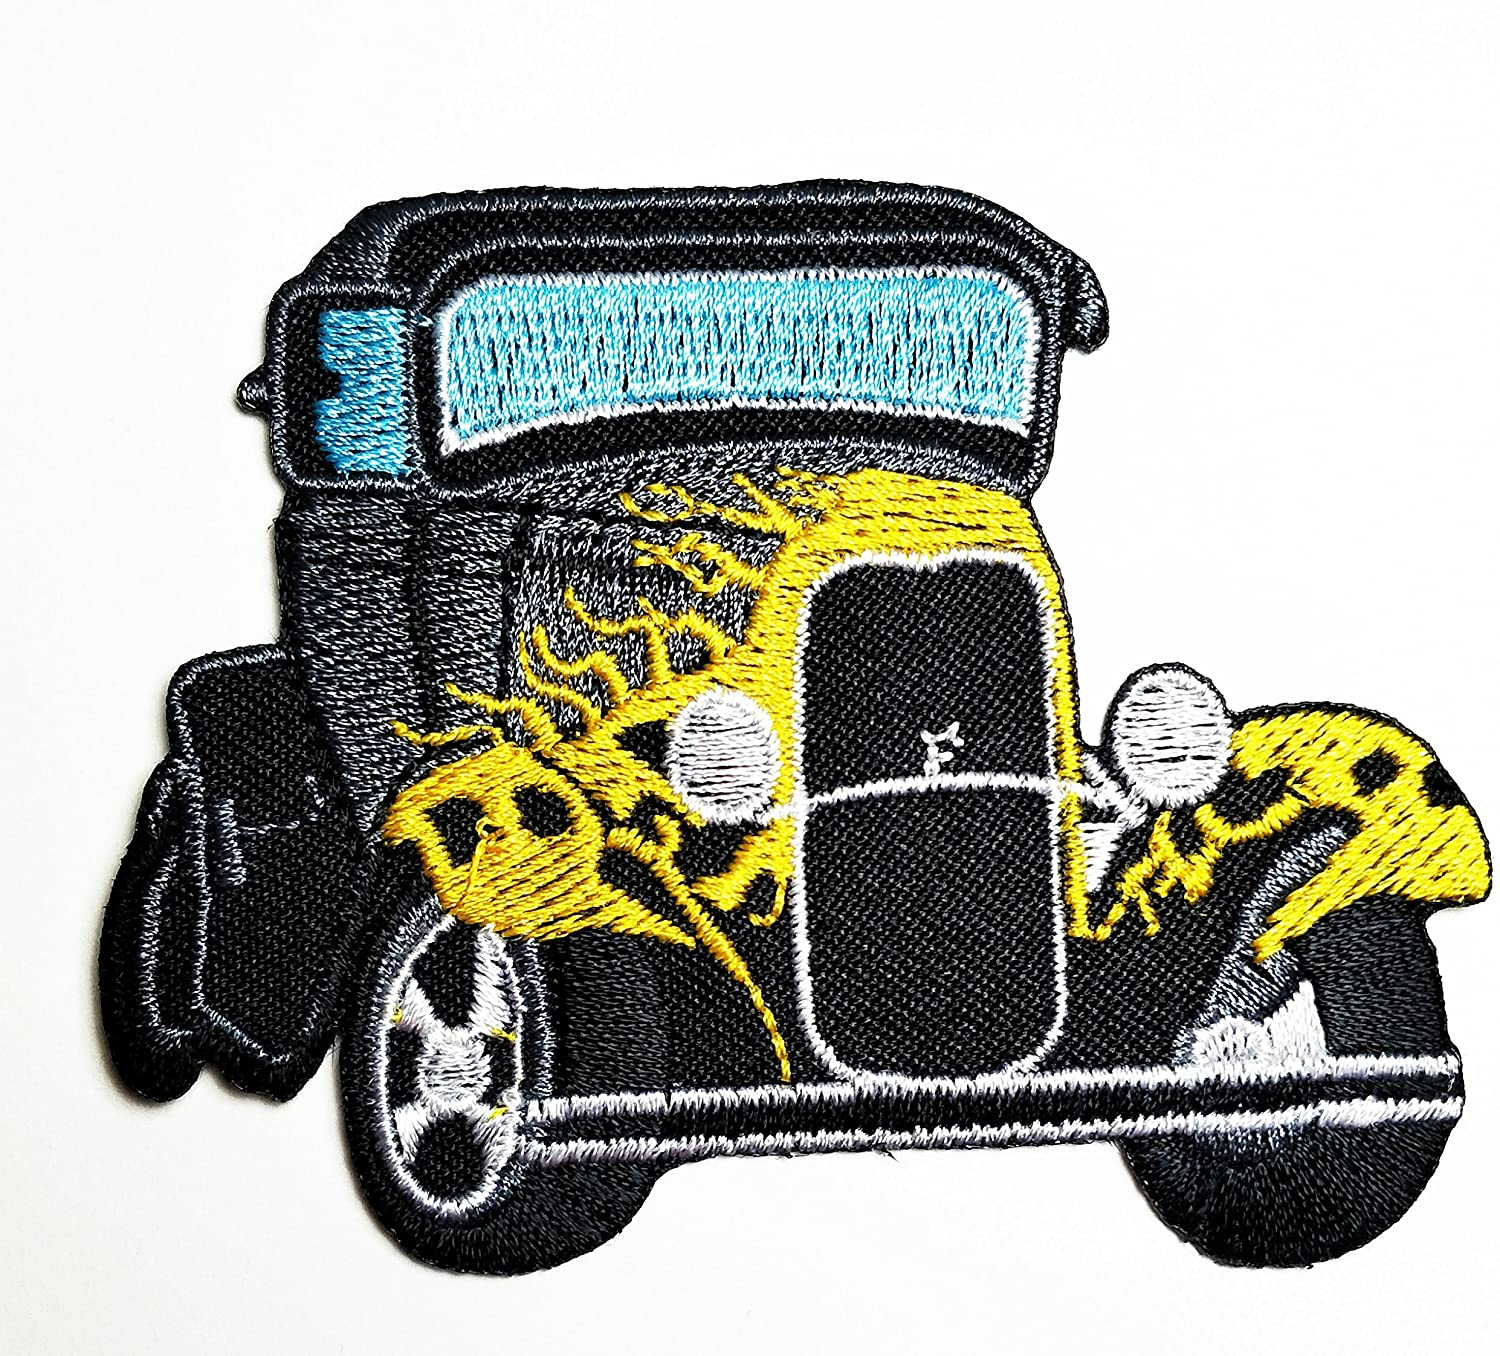 HHO Classic Old Car Cartoon Patch Embroidered DIY Patches, Cute Applique Sew Iron on Kids Craft Patch for Bags Jackets Jeans Clothes